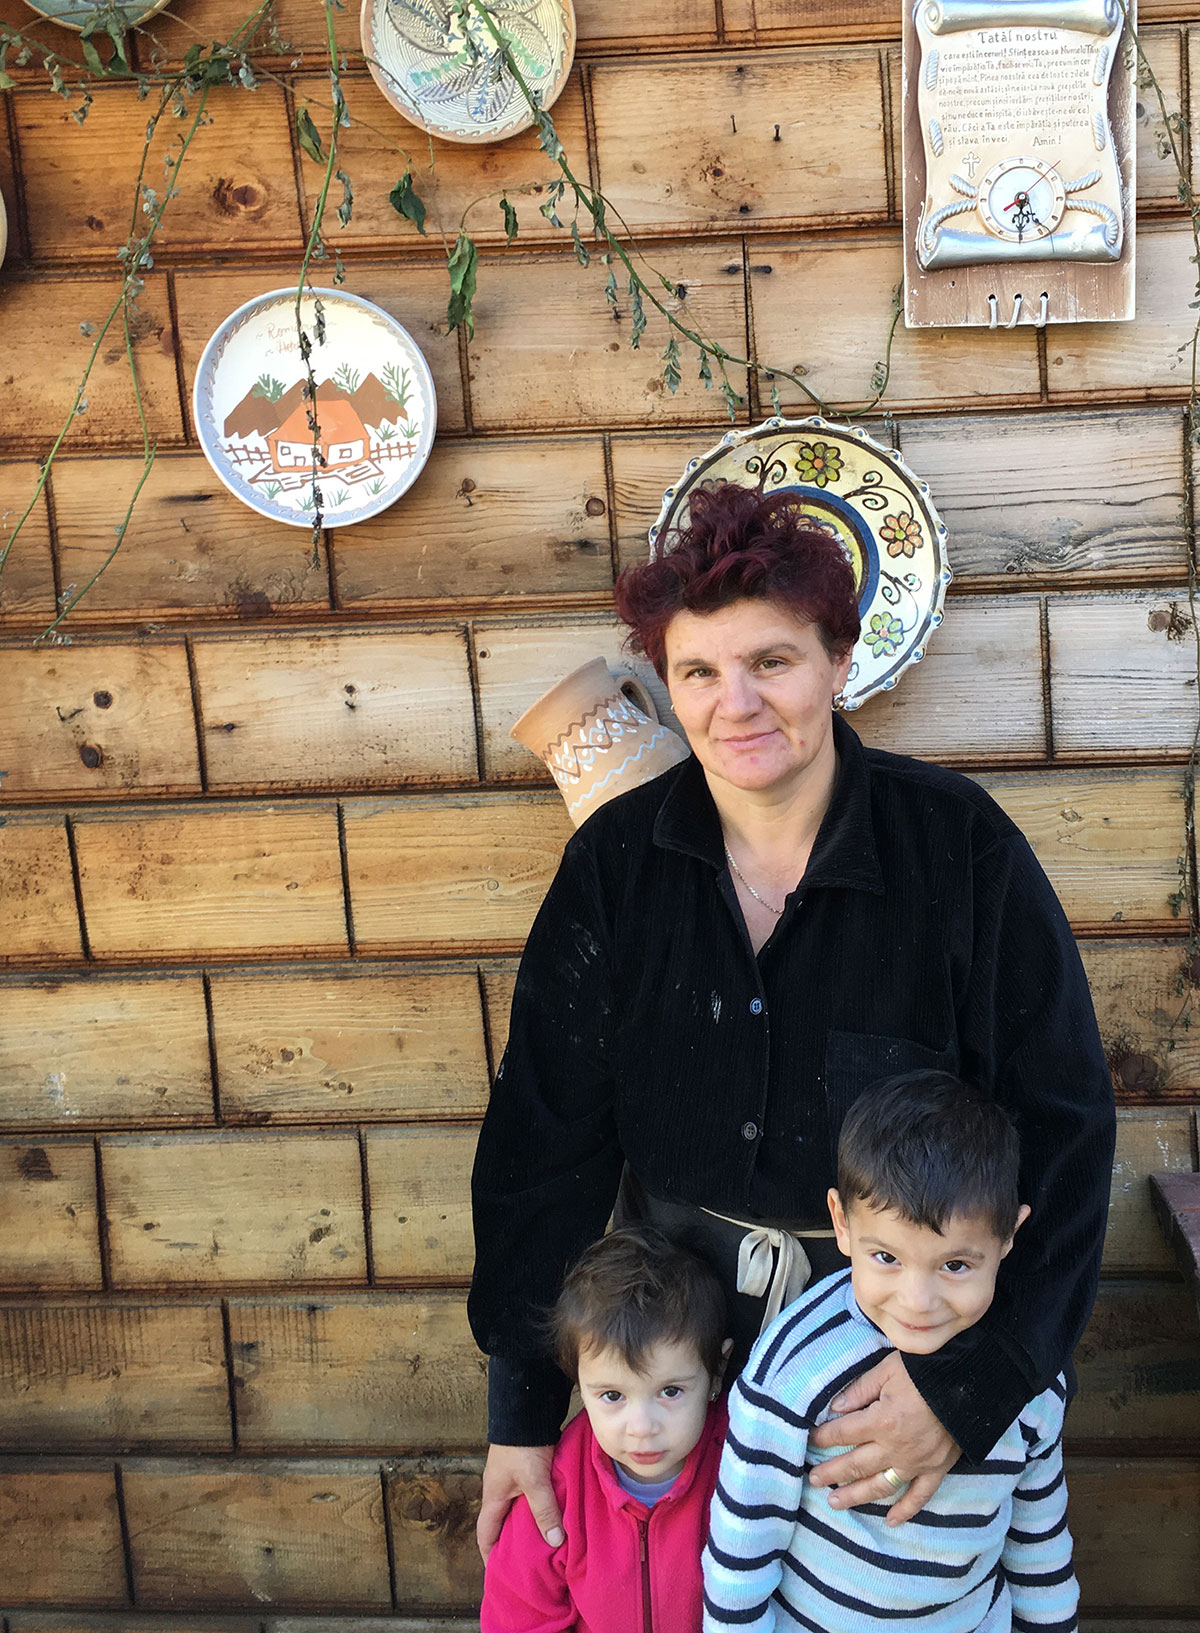 Alina Iorga, 2017, outside of her home with her grandchildren.